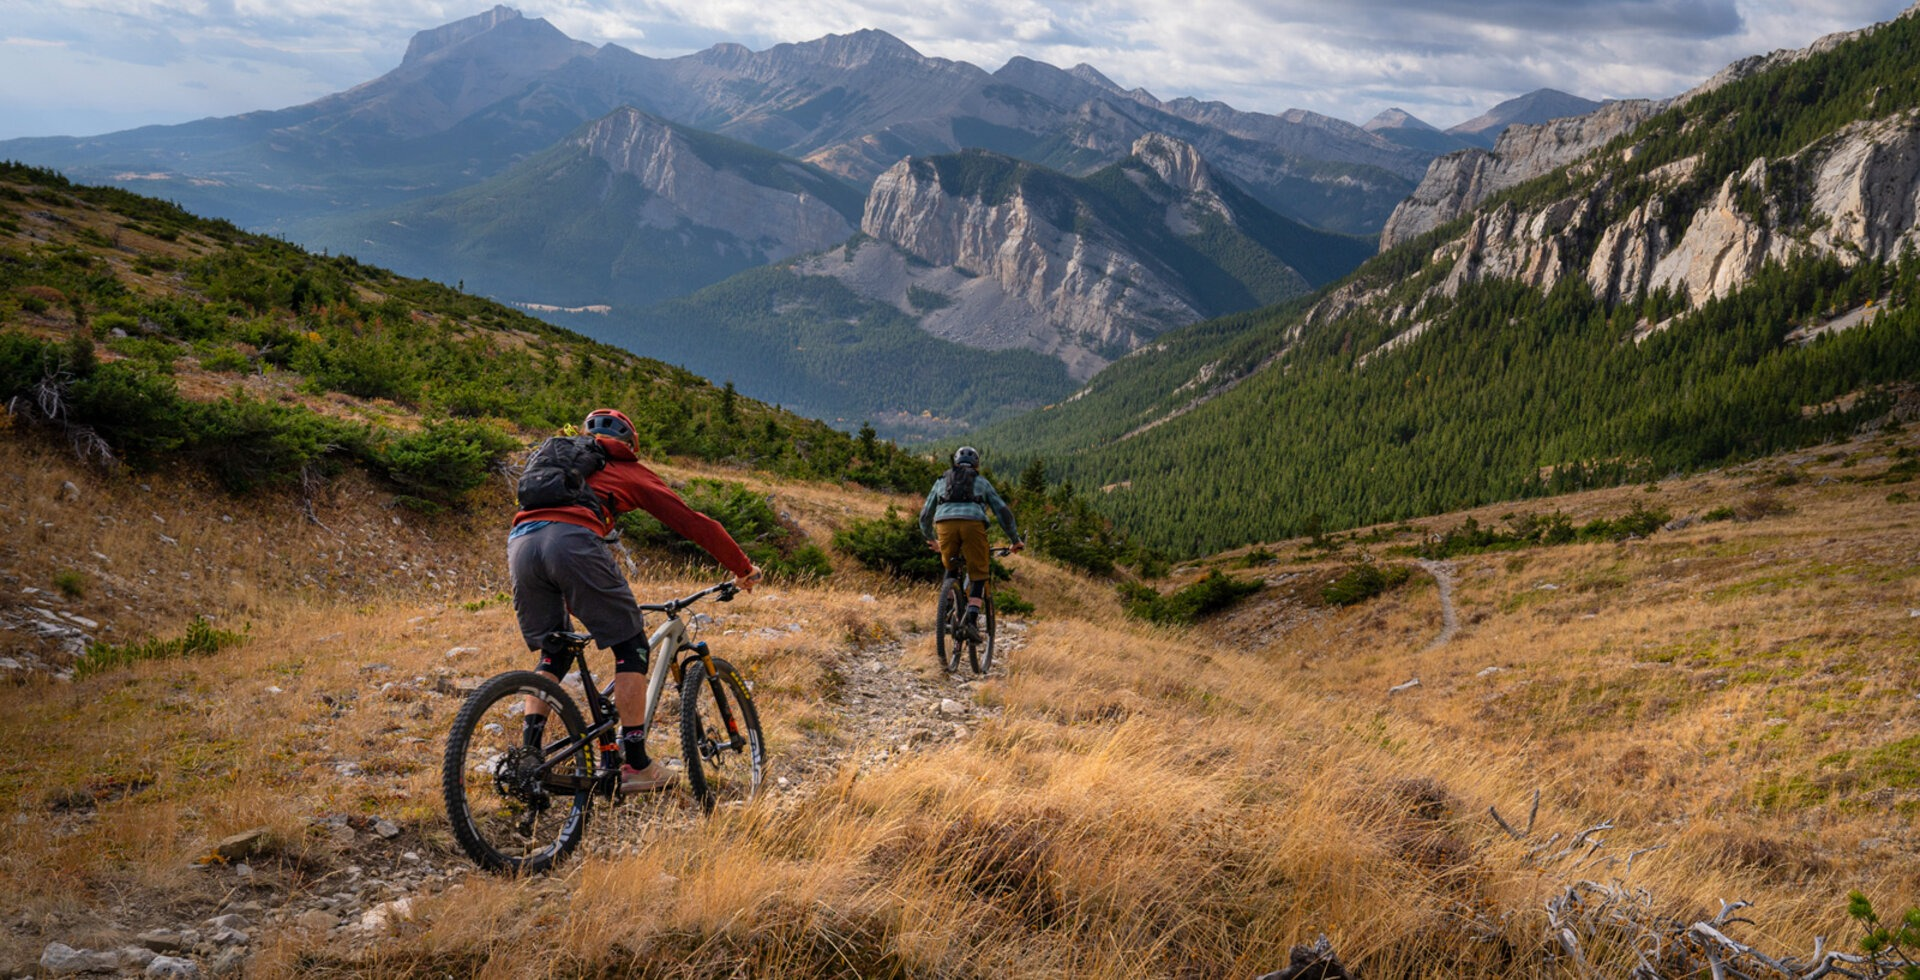 Sam Schultz and Eric Melson descend a particularly scenic section of backcountry singletrack near Montana's Bob Marshall Wilderness Complex in late autumn.